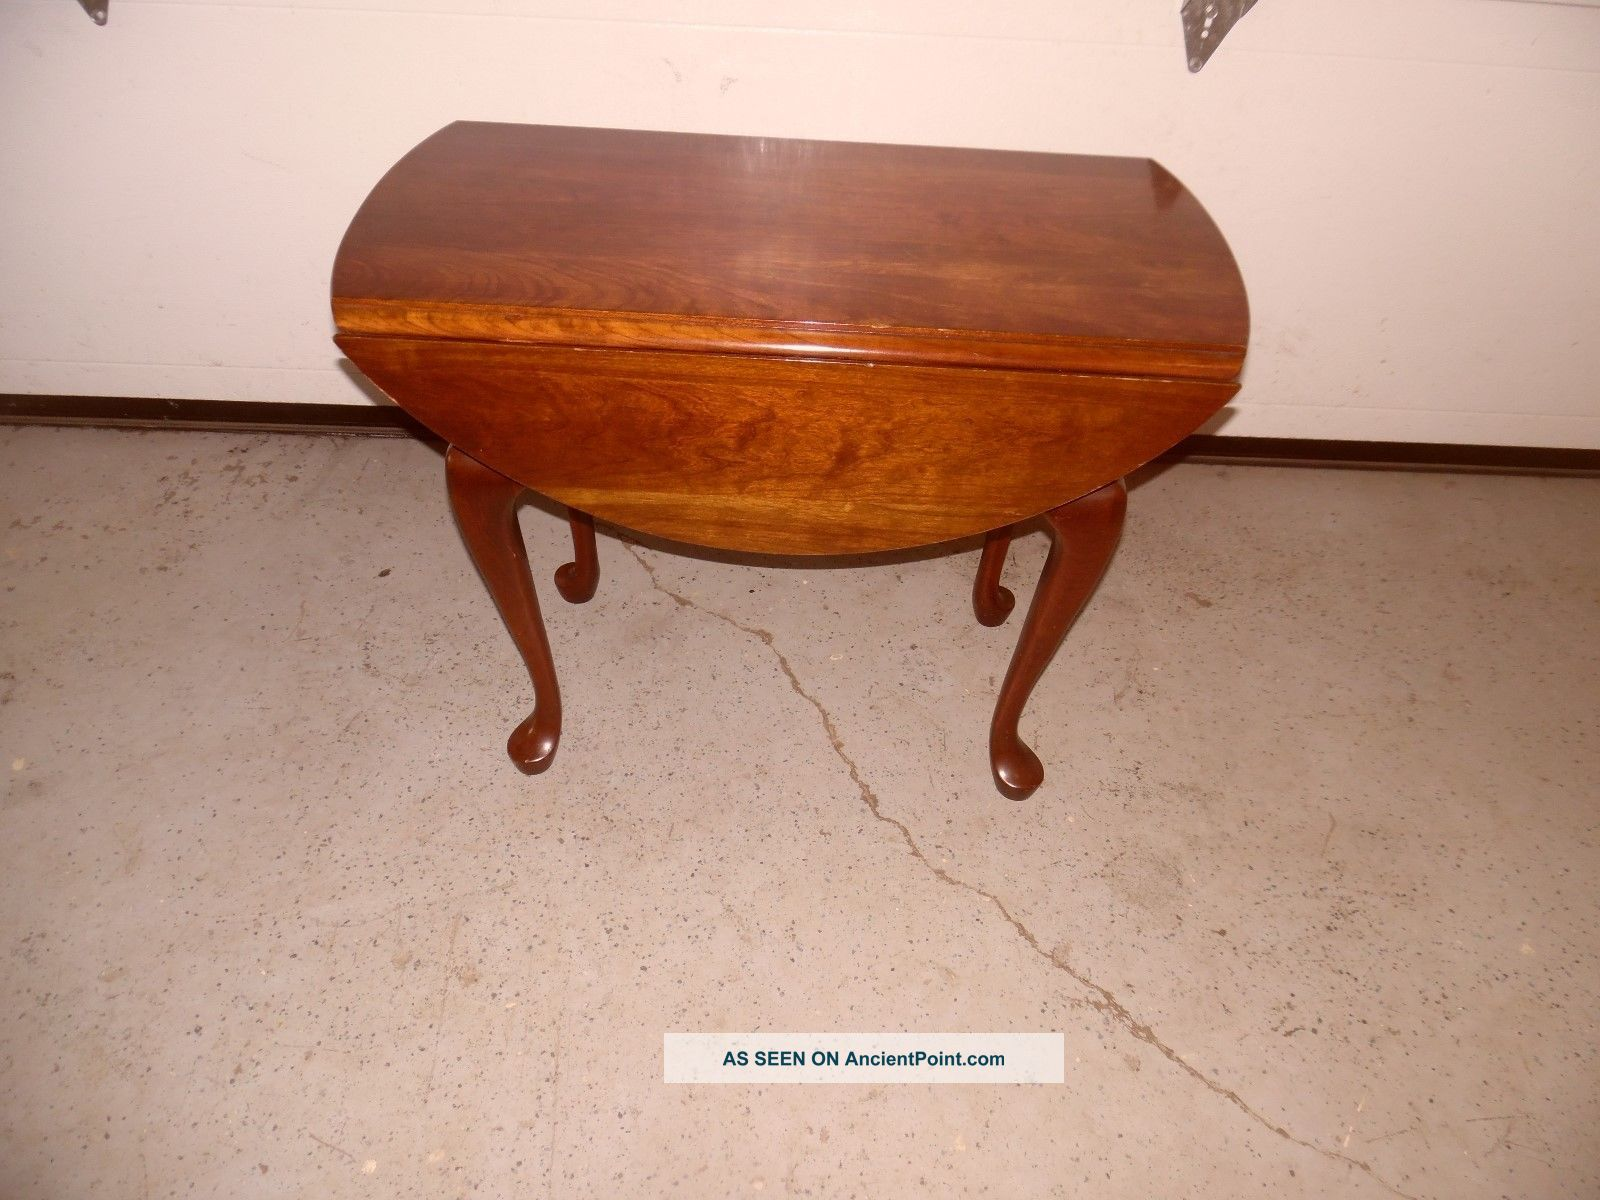 Pennsylvania House Cherry Queen Anne Style Drop Leave Table Post-1950 photo